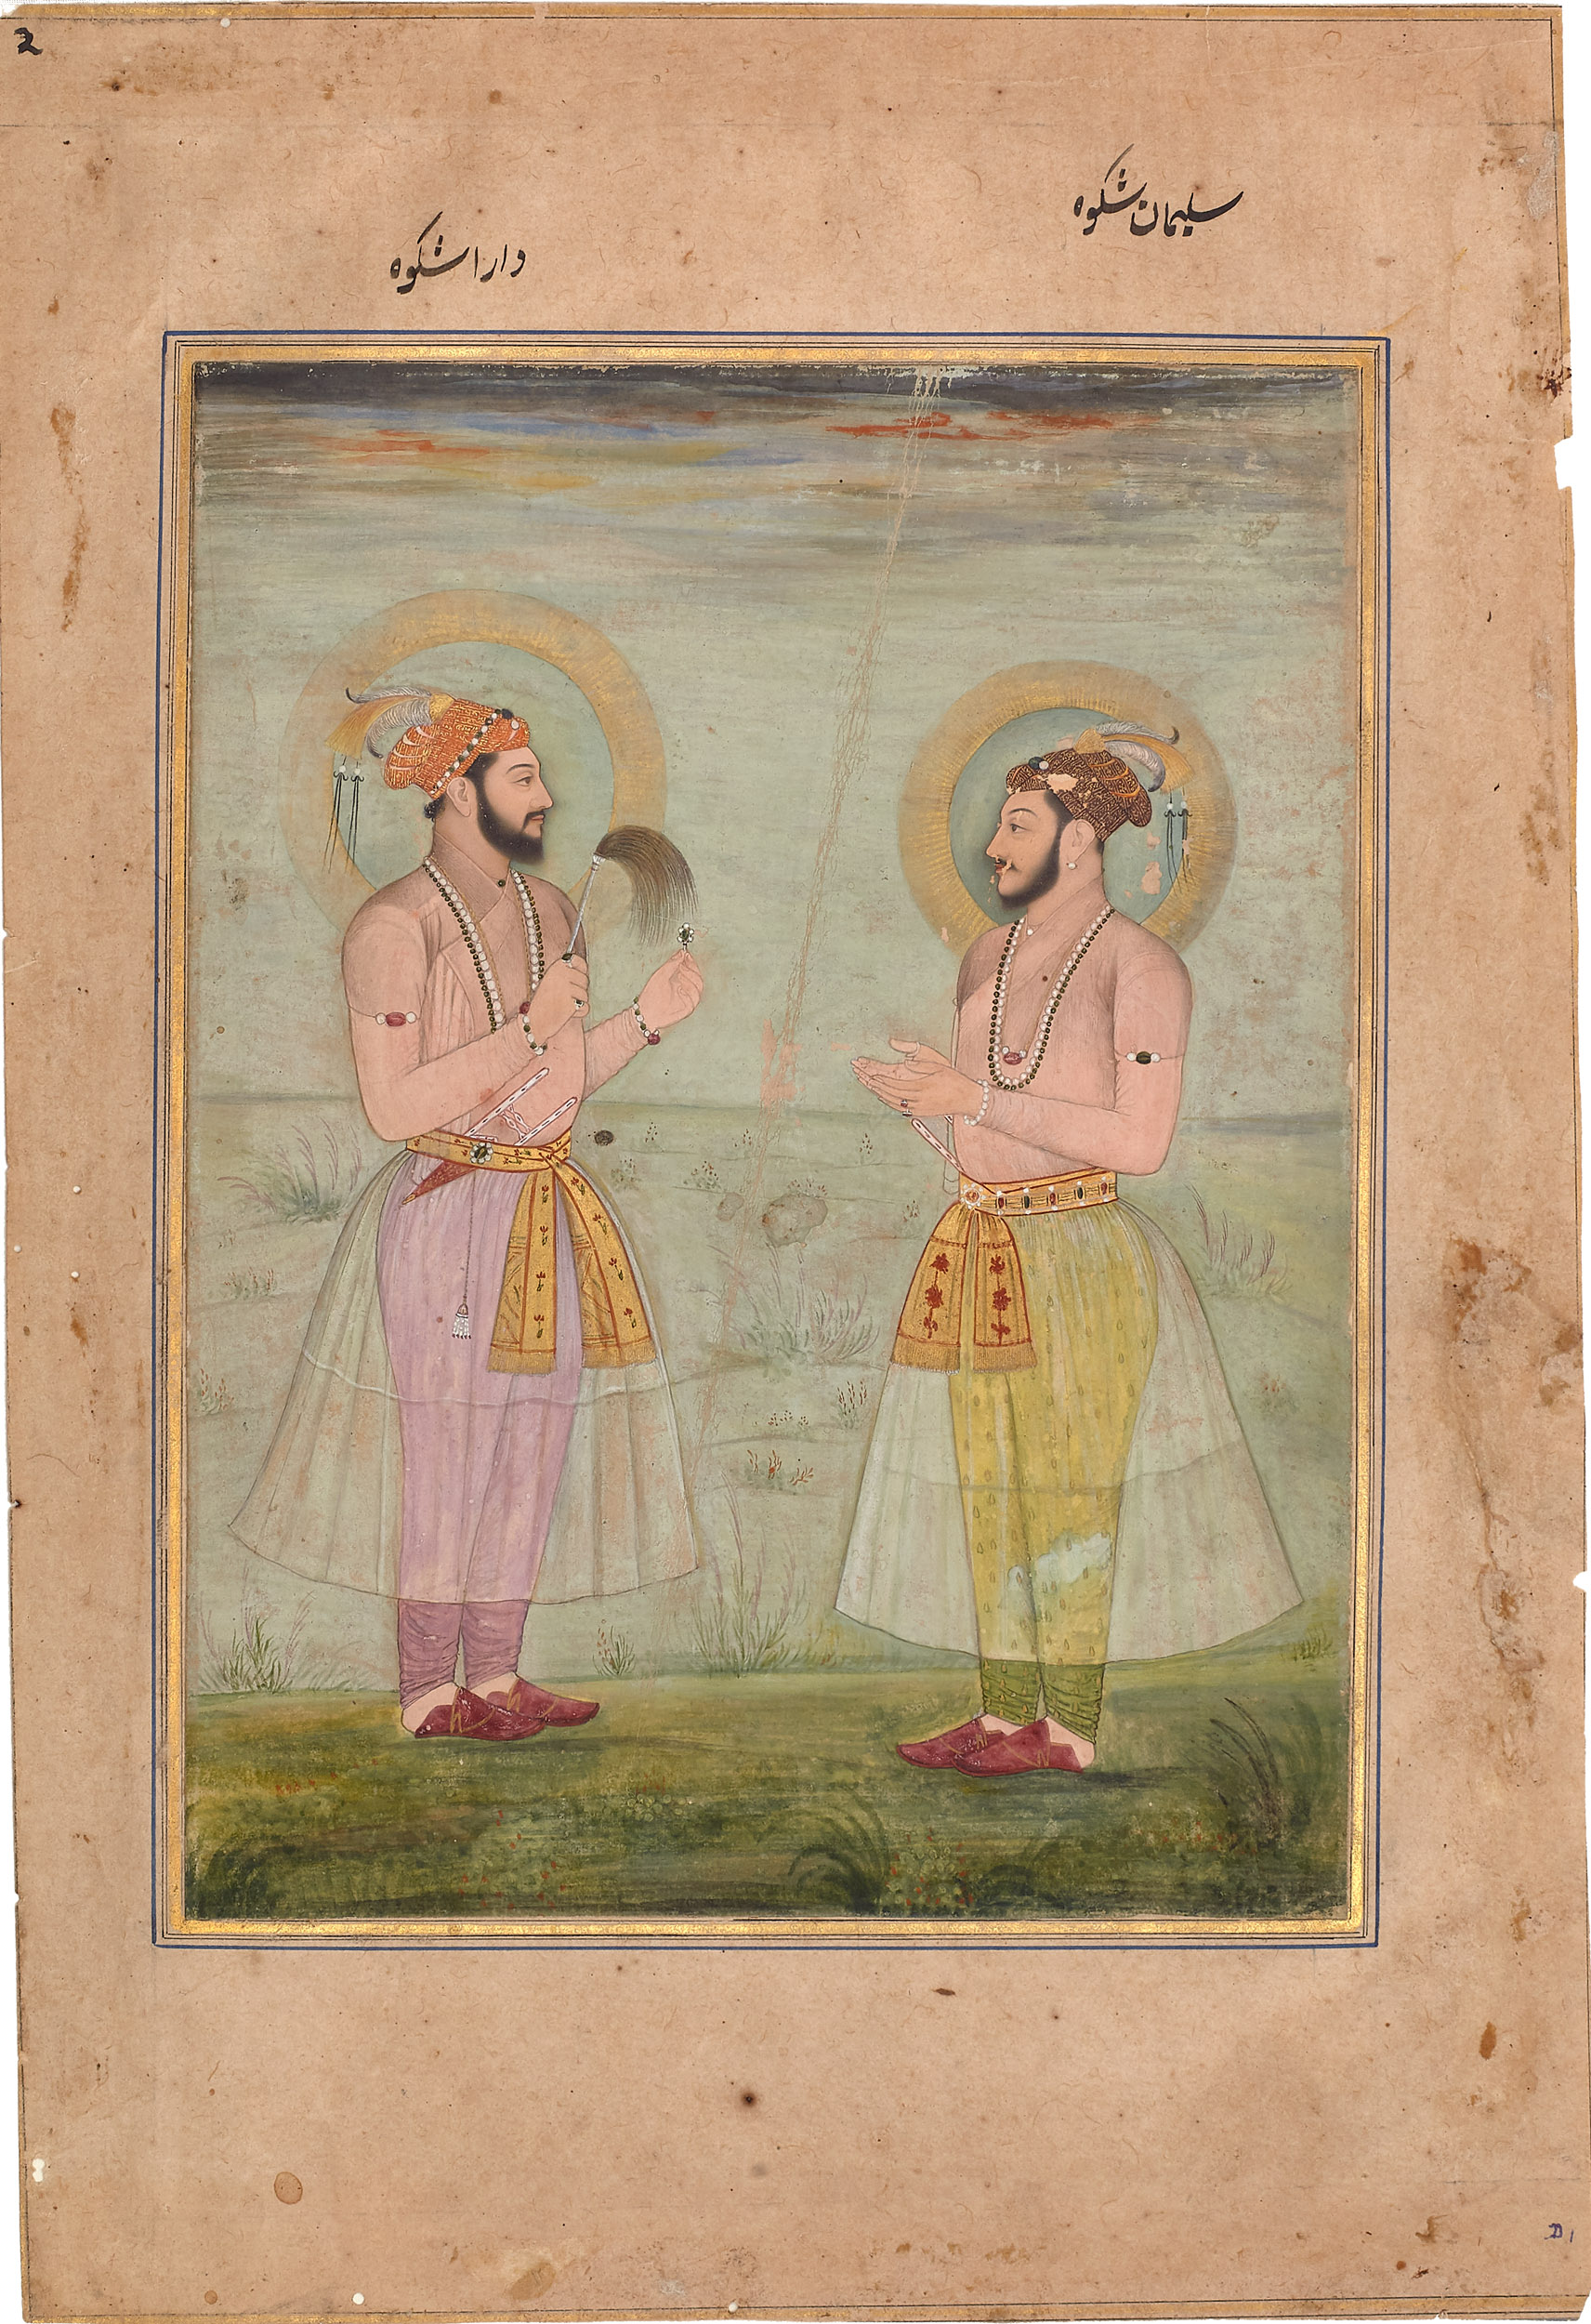 Dara and Sulaiman Shikoh